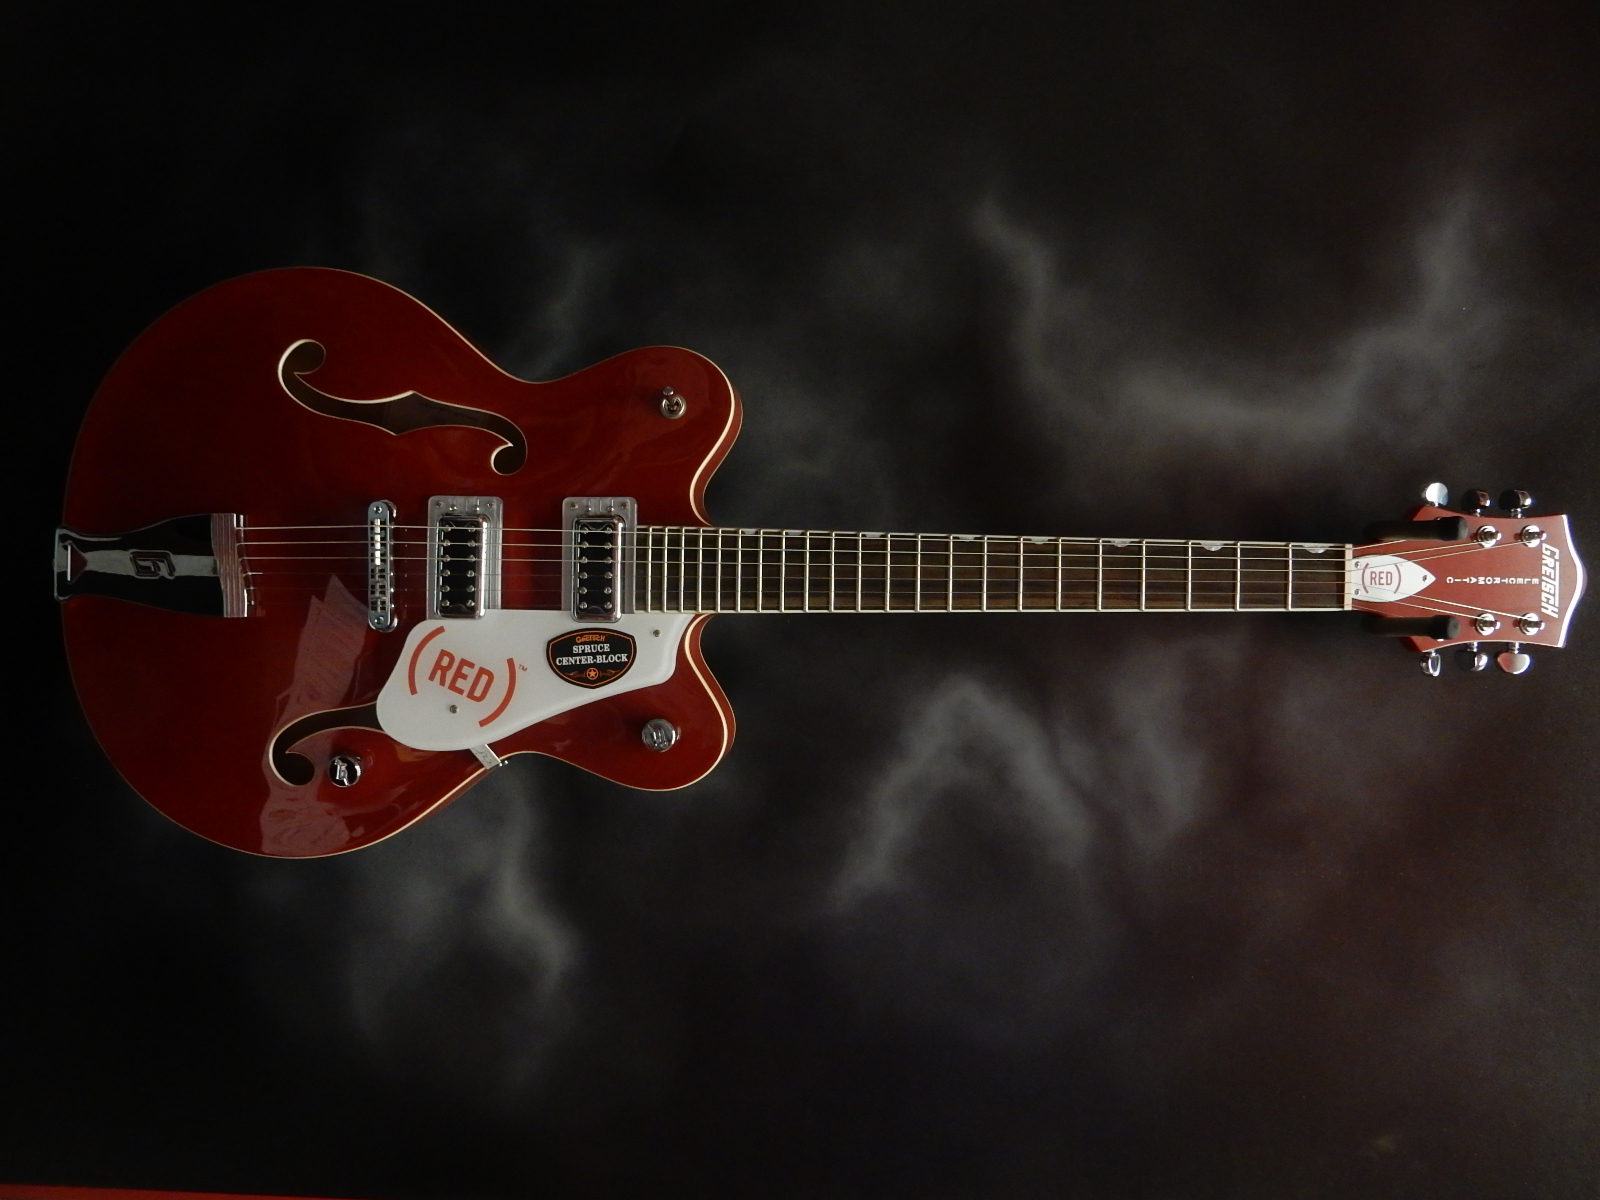 Gretsch - G5623 Electric Guitar RED Edition Bono